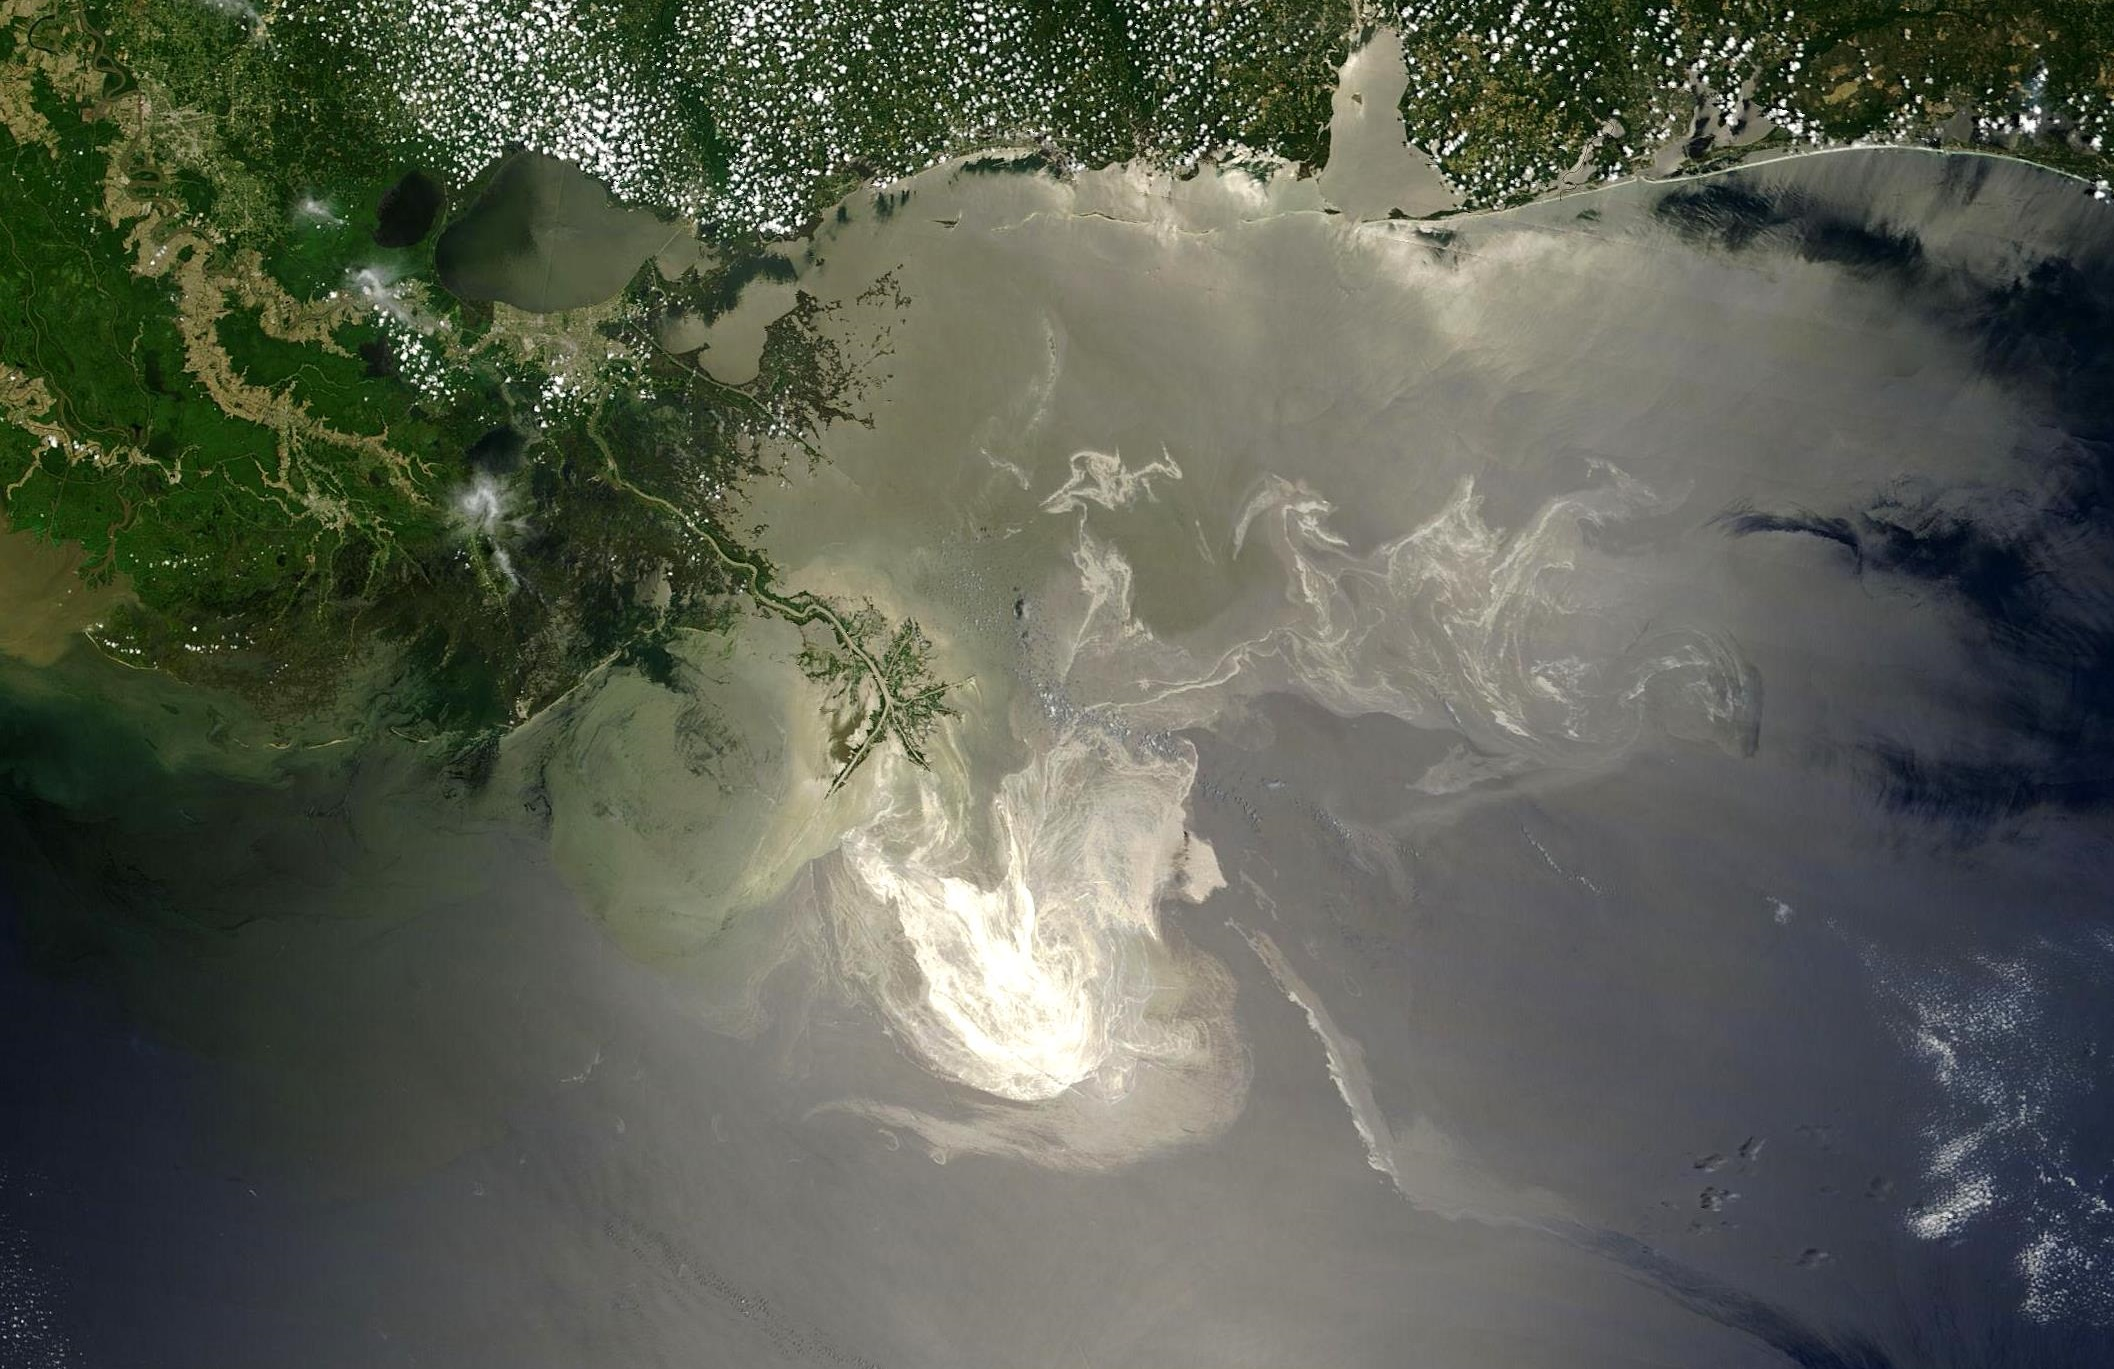 The lingering oil slick from DeepWater Horizon was imaged off the Mississippi Delta on May 24, 2010.